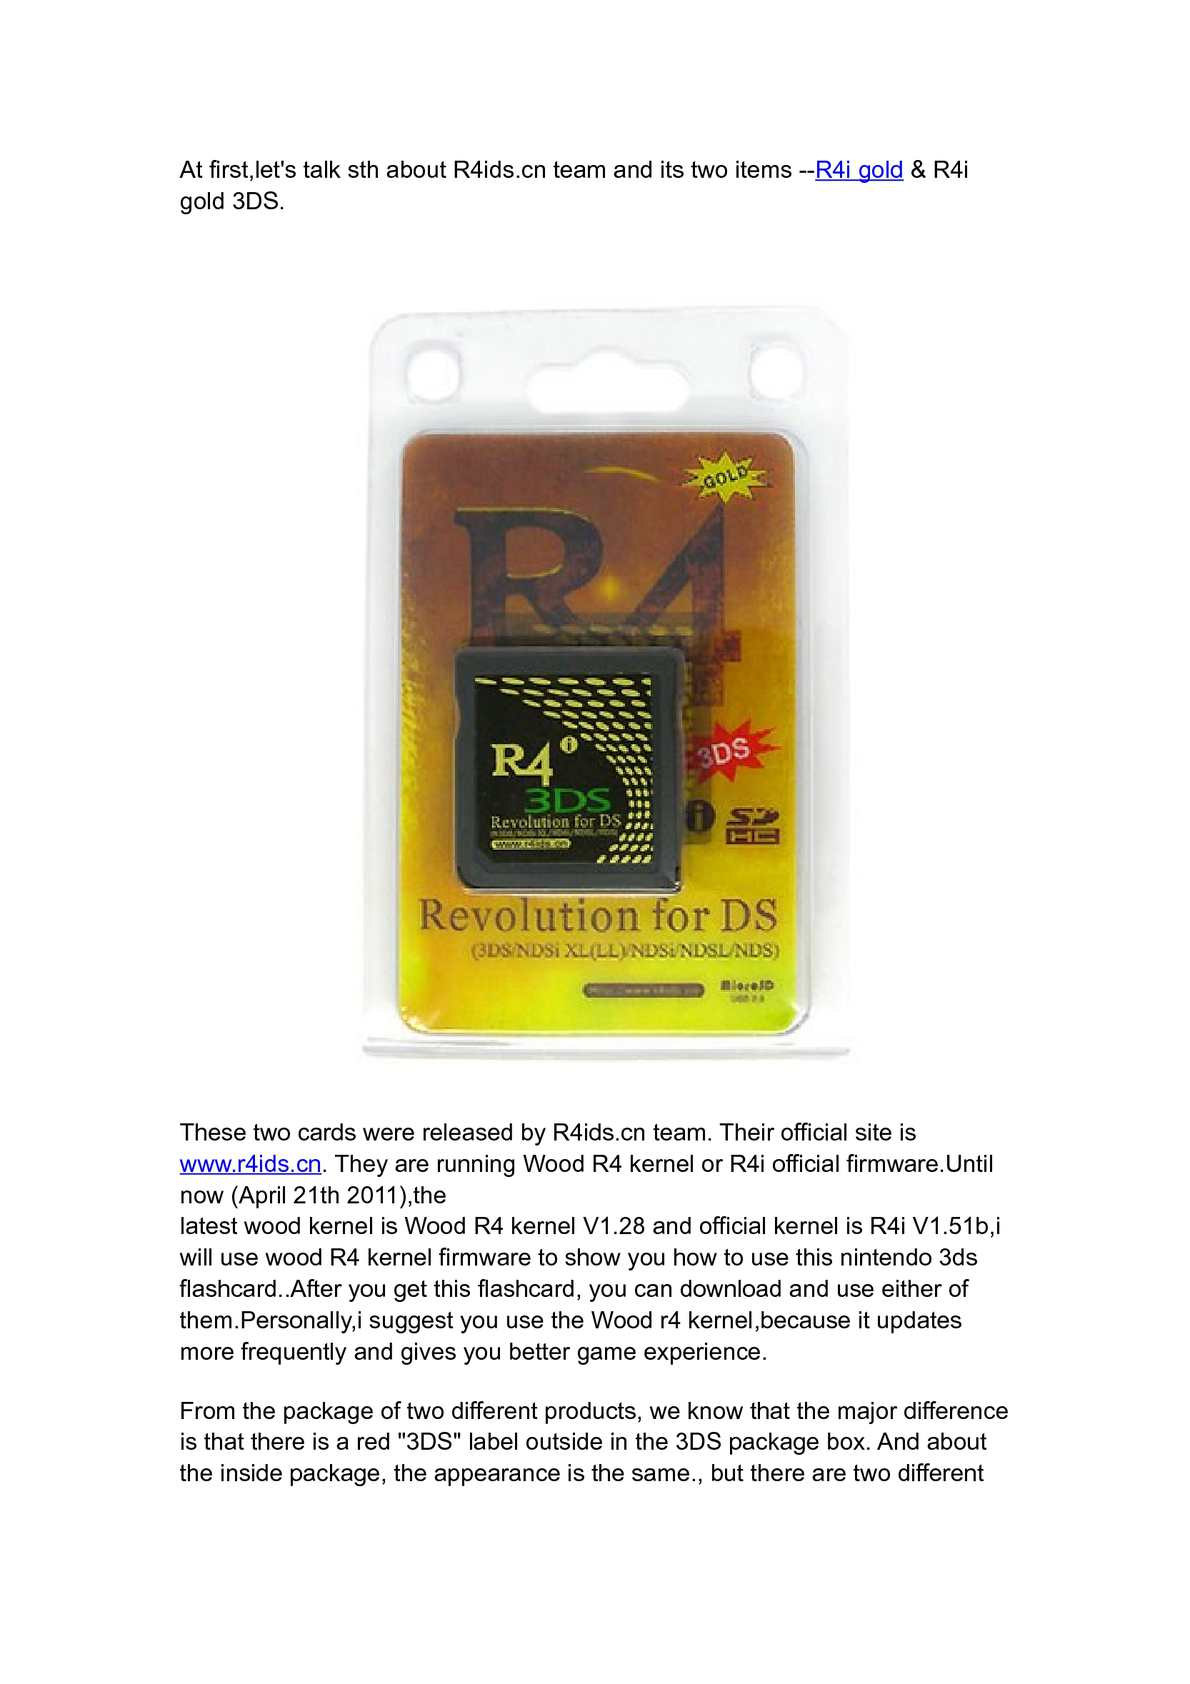 Calaméo - How to use R4i Gold 3DS card